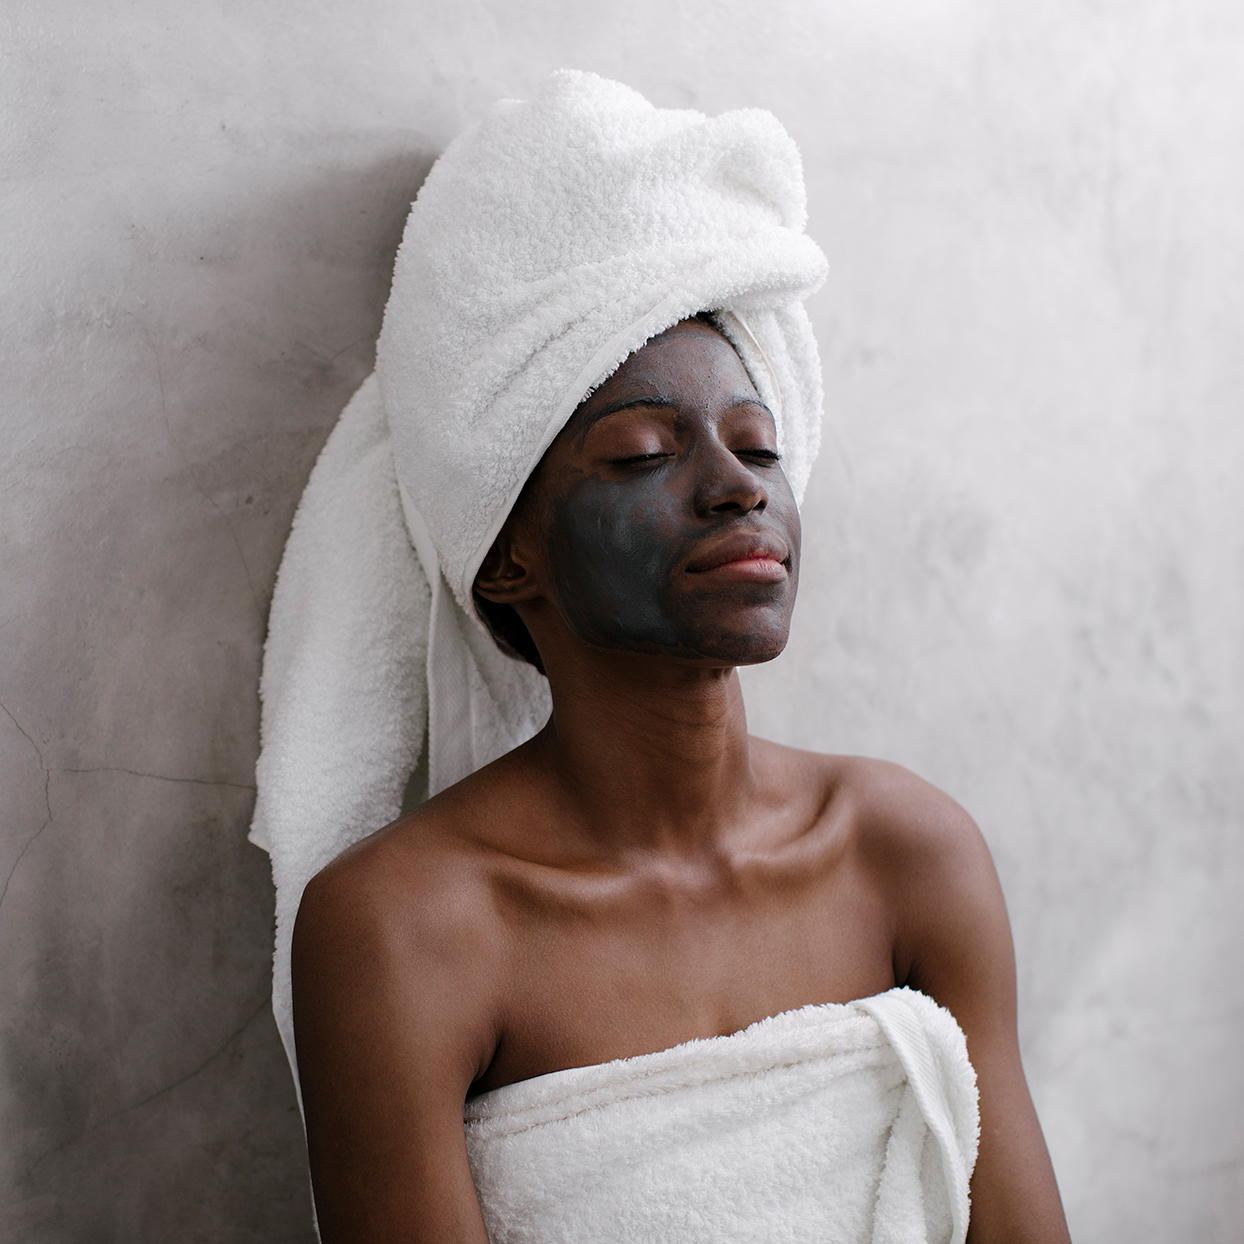 Woman using charcoal face mask